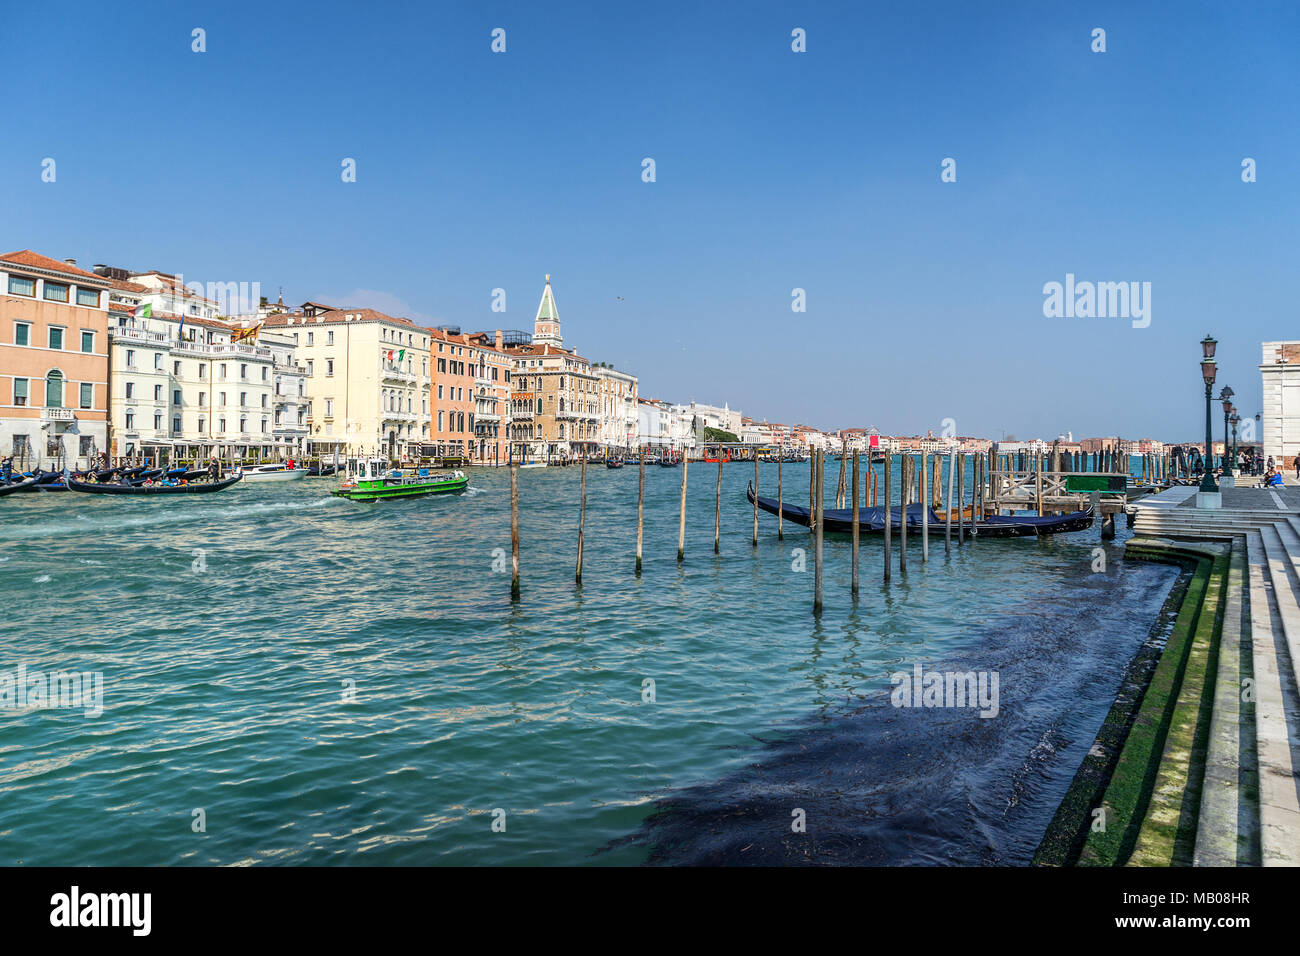 Looking across the Grand Canal from Campo della Salute - Stock Image